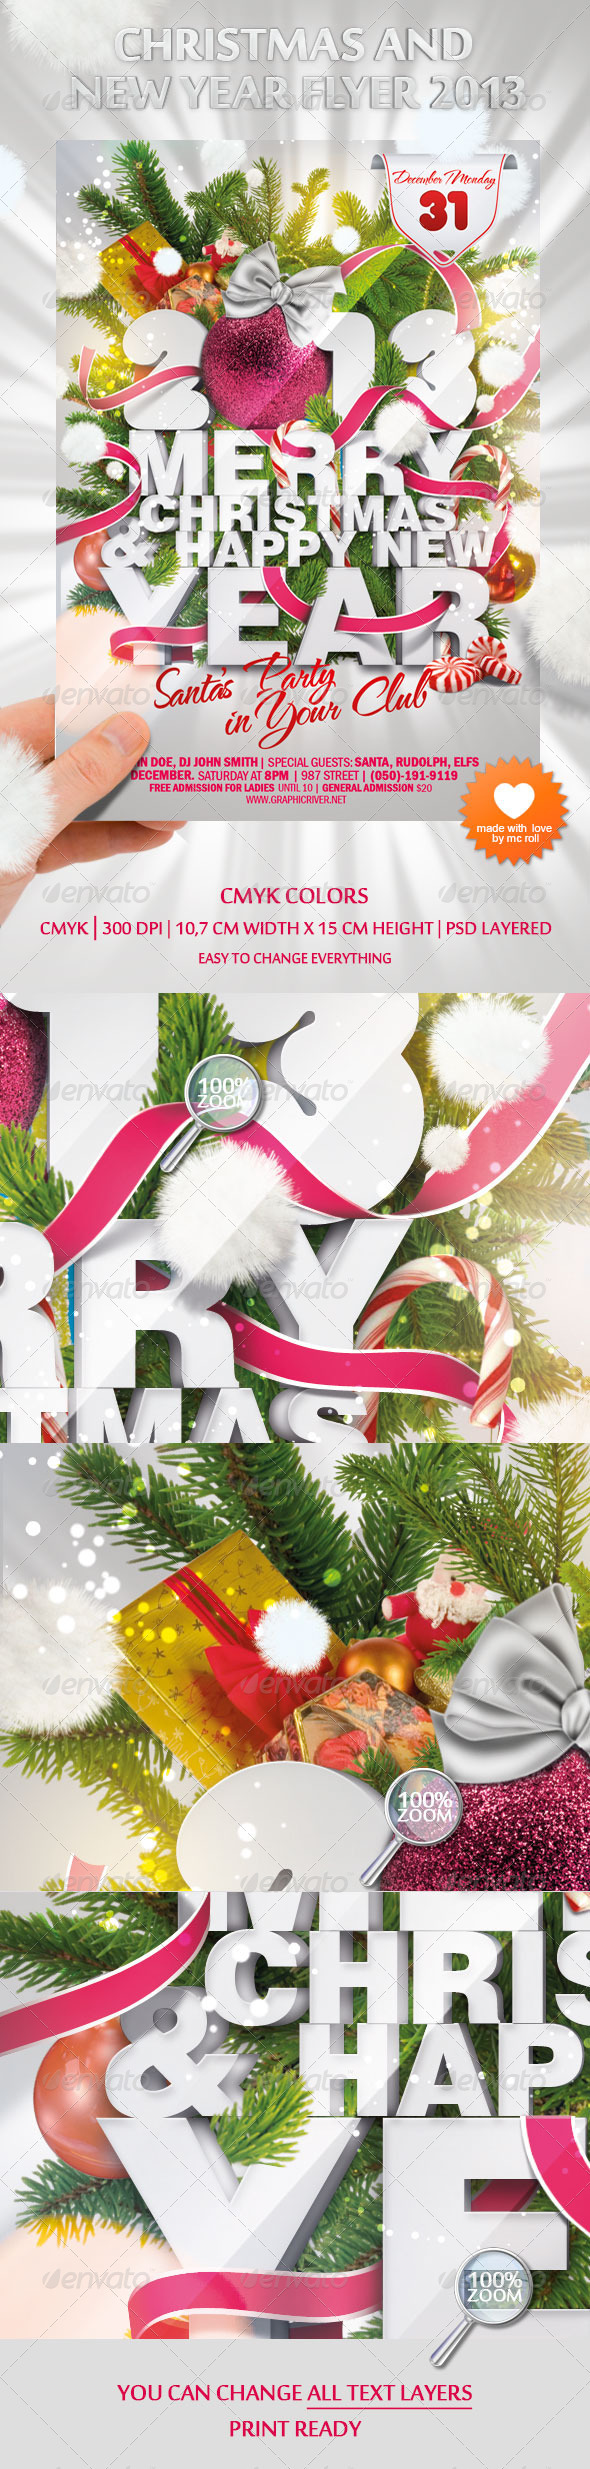 GraphicRiver Christmas and New Year Flyer 2013 979556